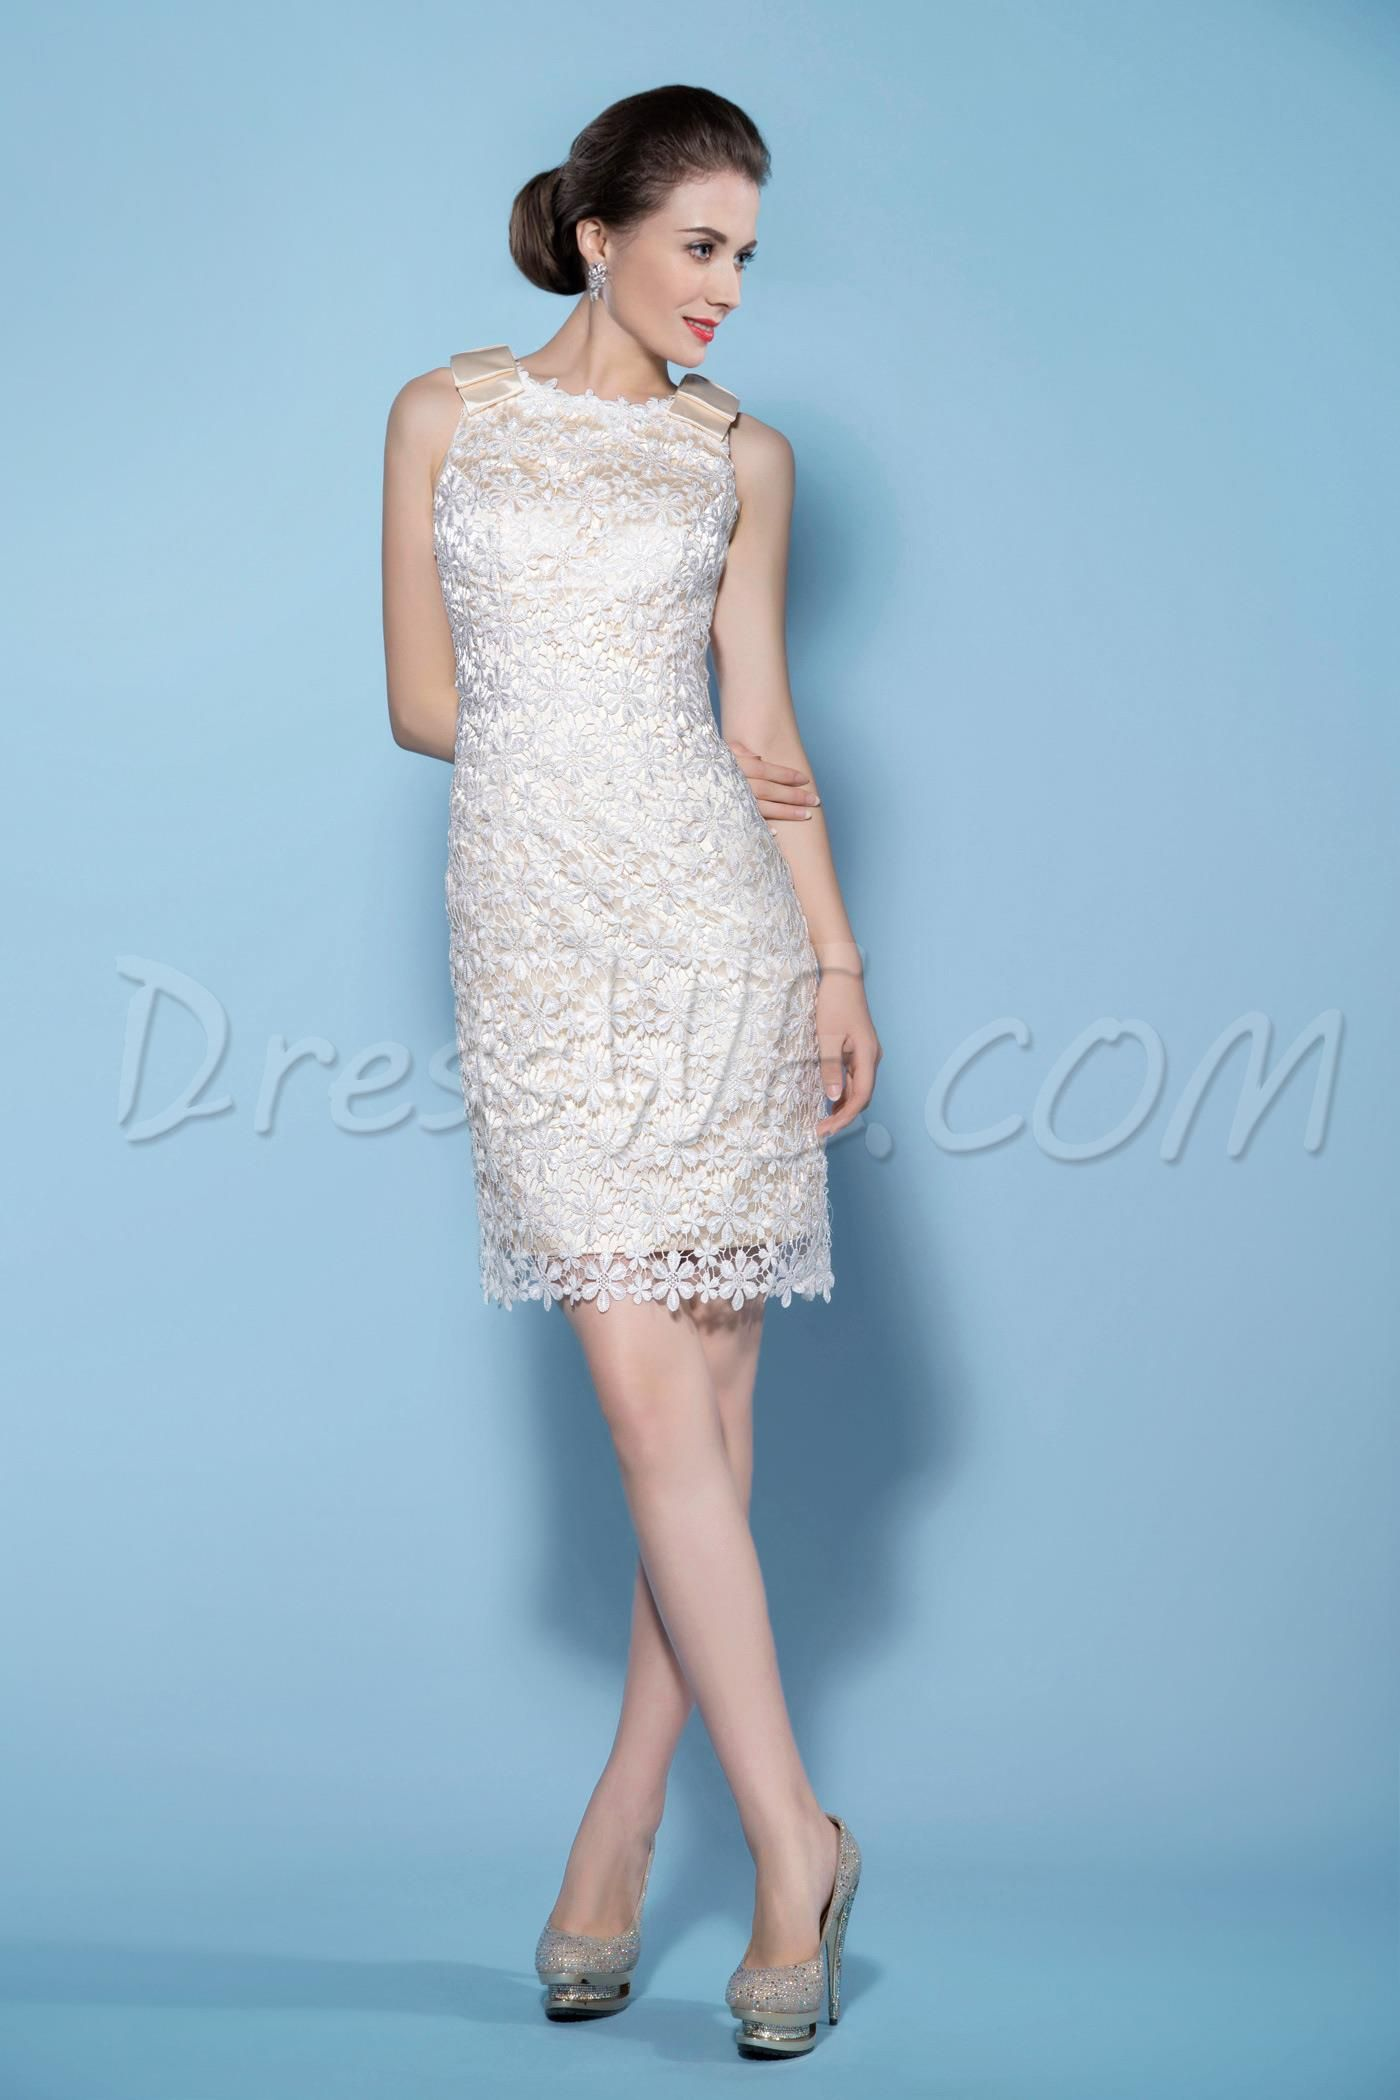 $107.29 Dresswe.com SUPPLIES Stunning Sheath/Column Knee-Length Lace ...